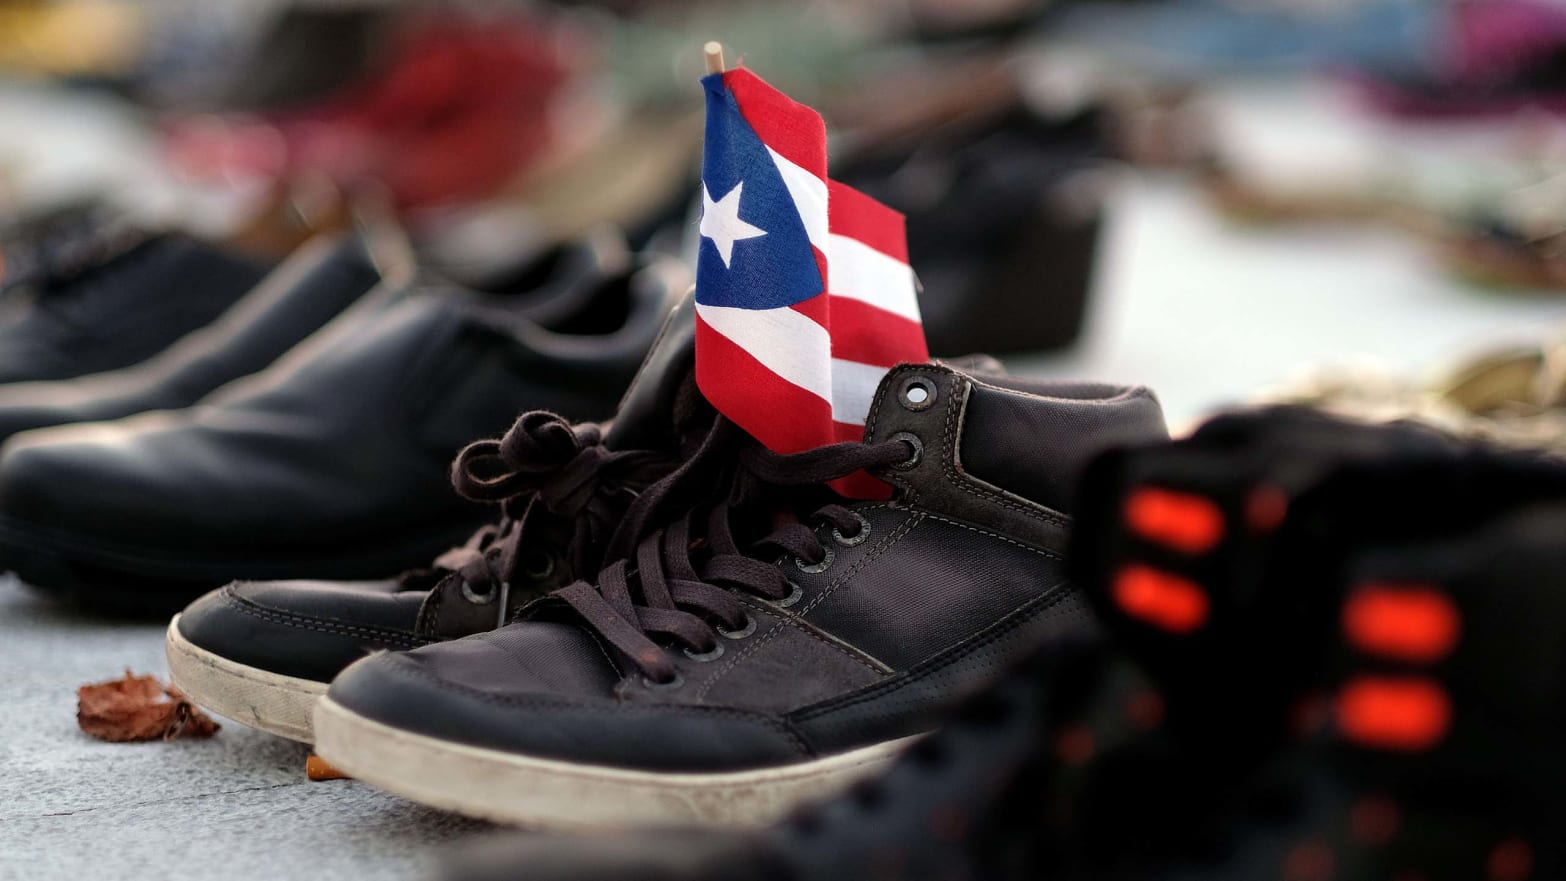 shoes holding puerto rico flag death toll maria katrina counting death statistic demography george washington harvard university climate change global warming